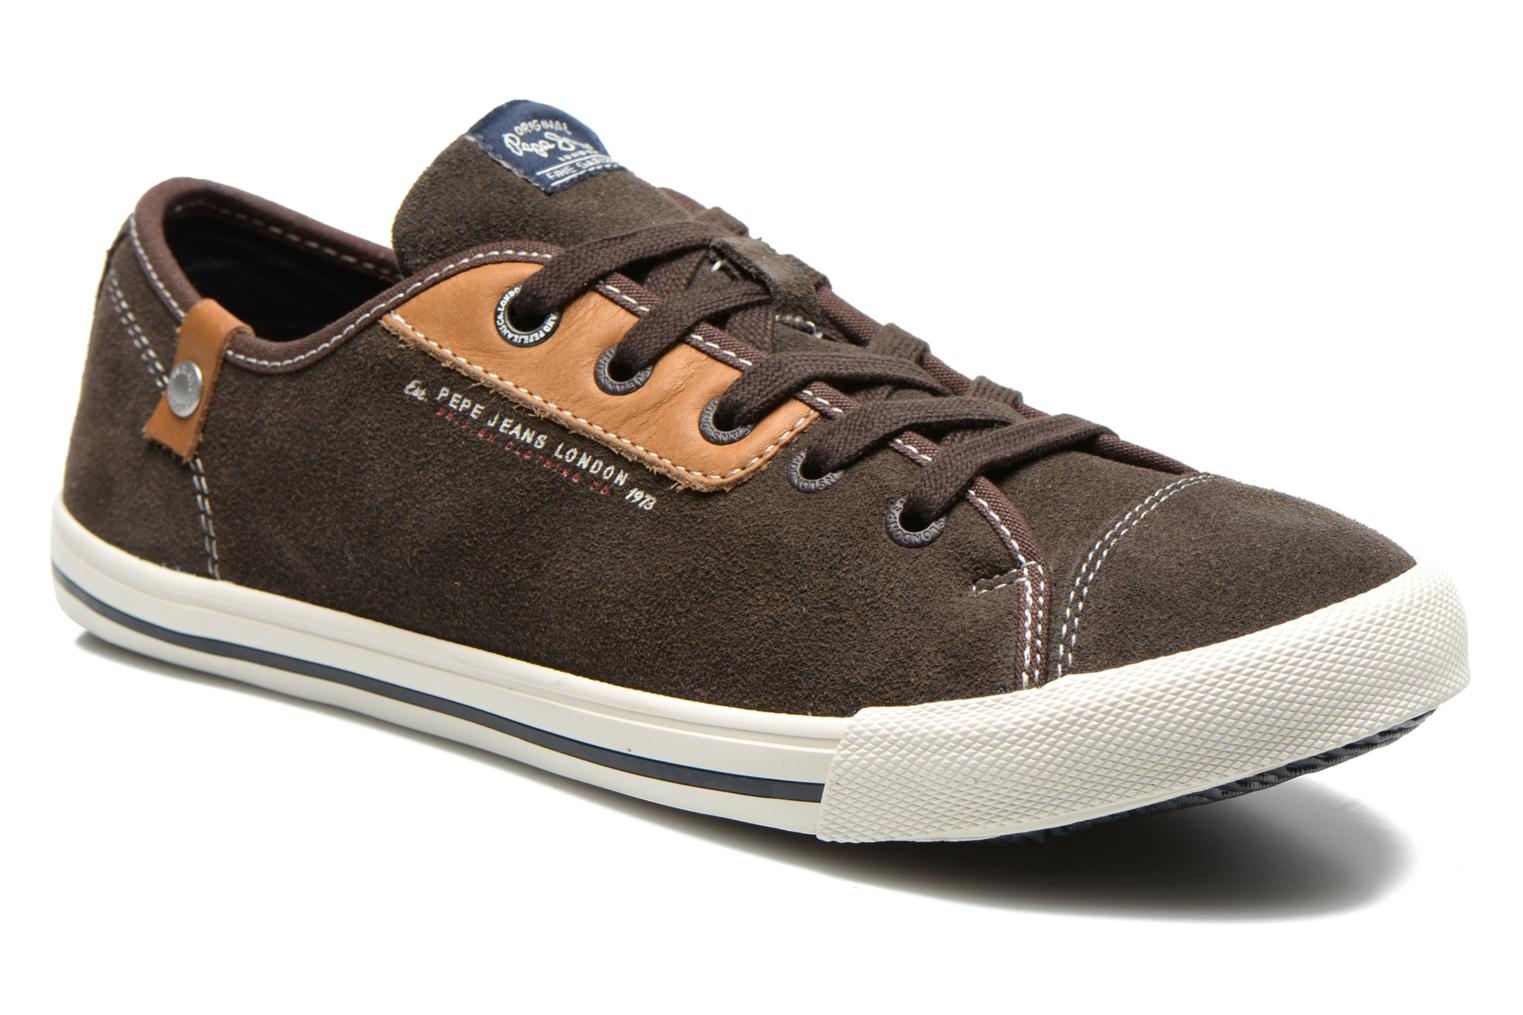 Sneakers Britt Classic by Pepe jeans